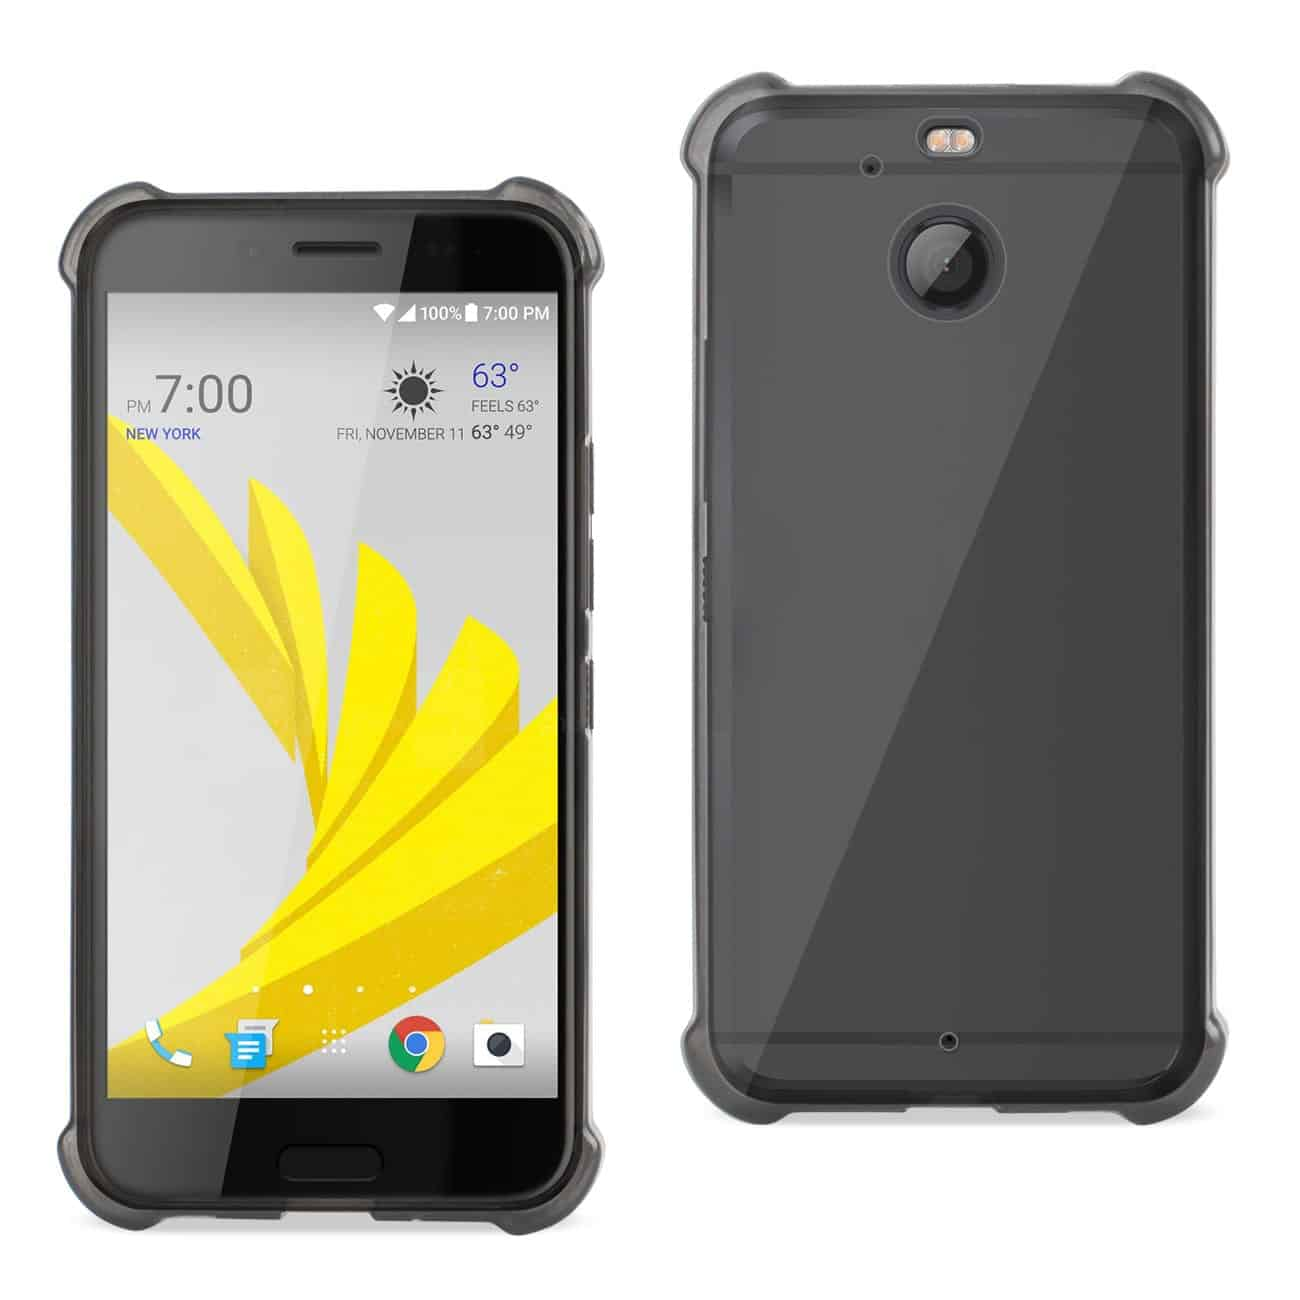 HTC BOLT CLEAR BUMPER CASE WITH AIR CUSHION PROTECTION IN CLEAR BLACK